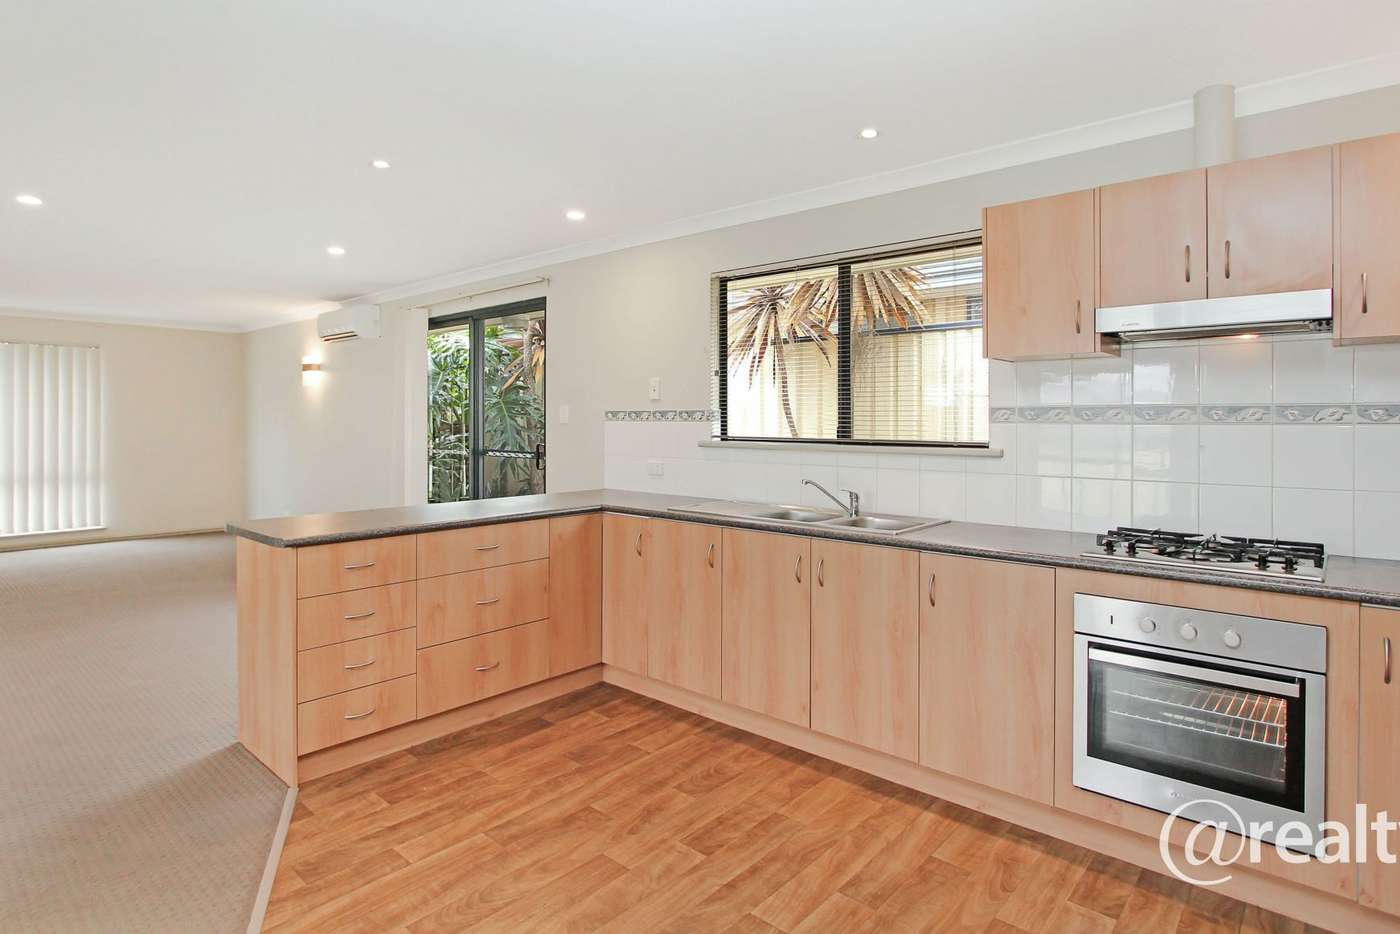 Sixth view of Homely house listing, 24 Preiss Street, Lockyer WA 6330